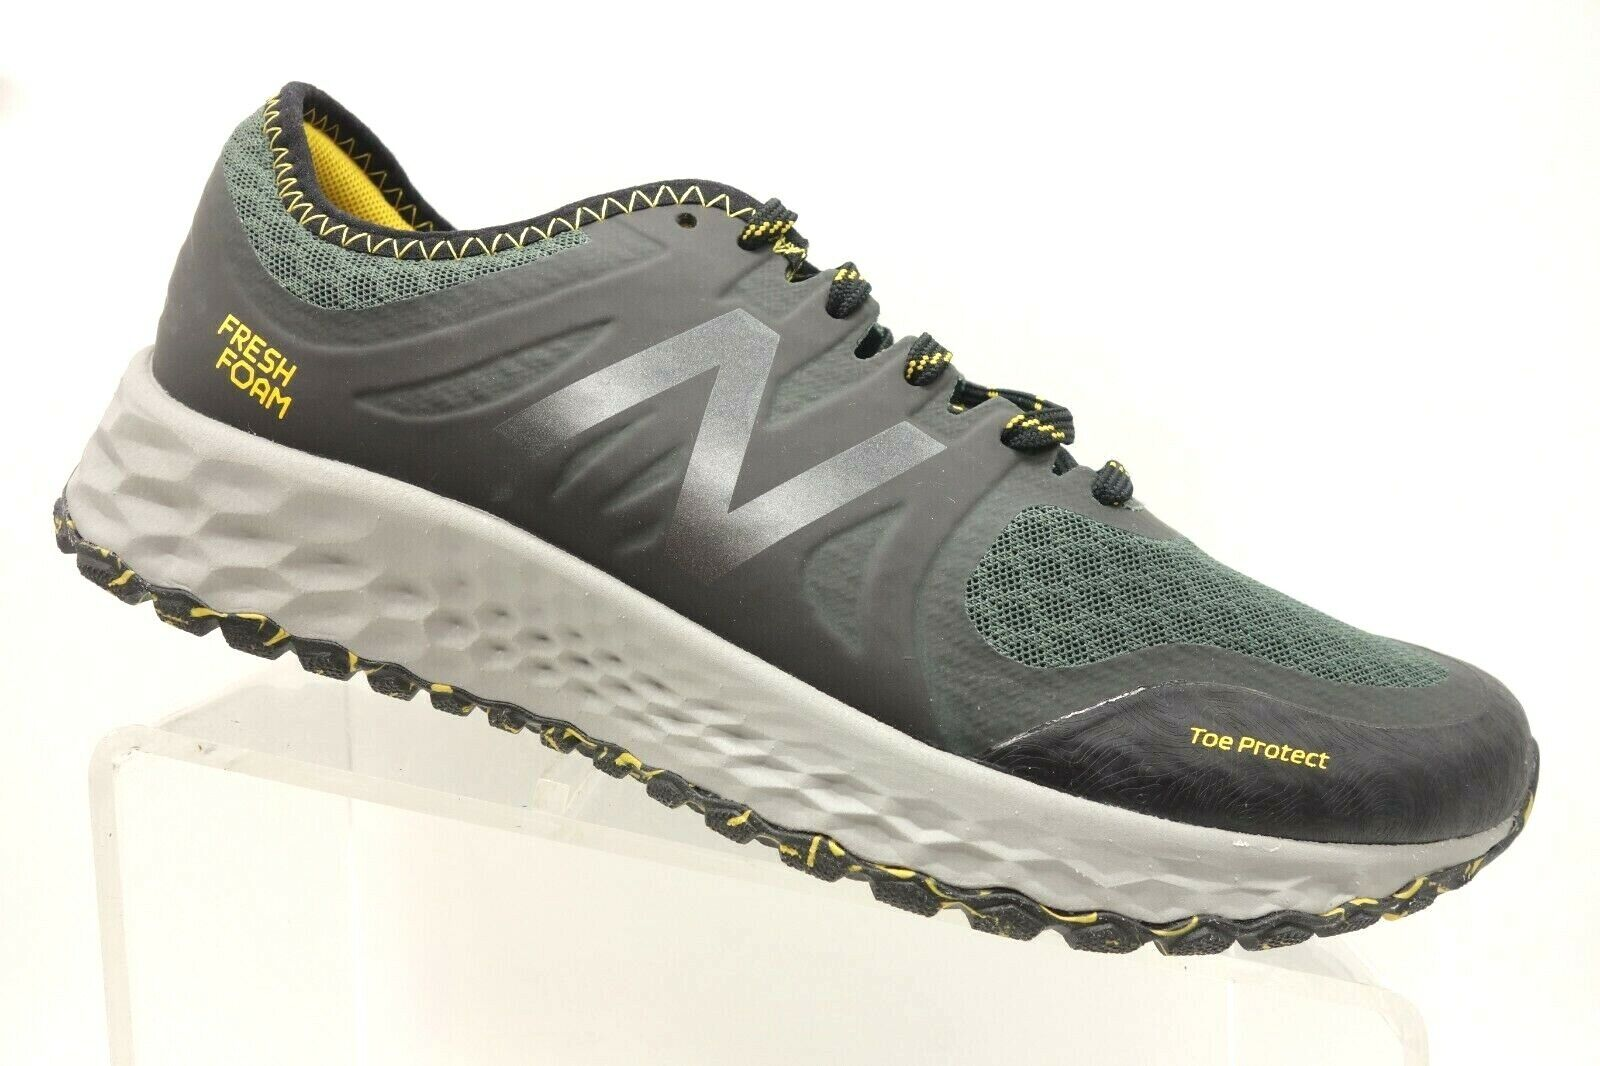 New Balance All Terrain Black Green Athletic Hiking Trail shoes Men's 9.5 D